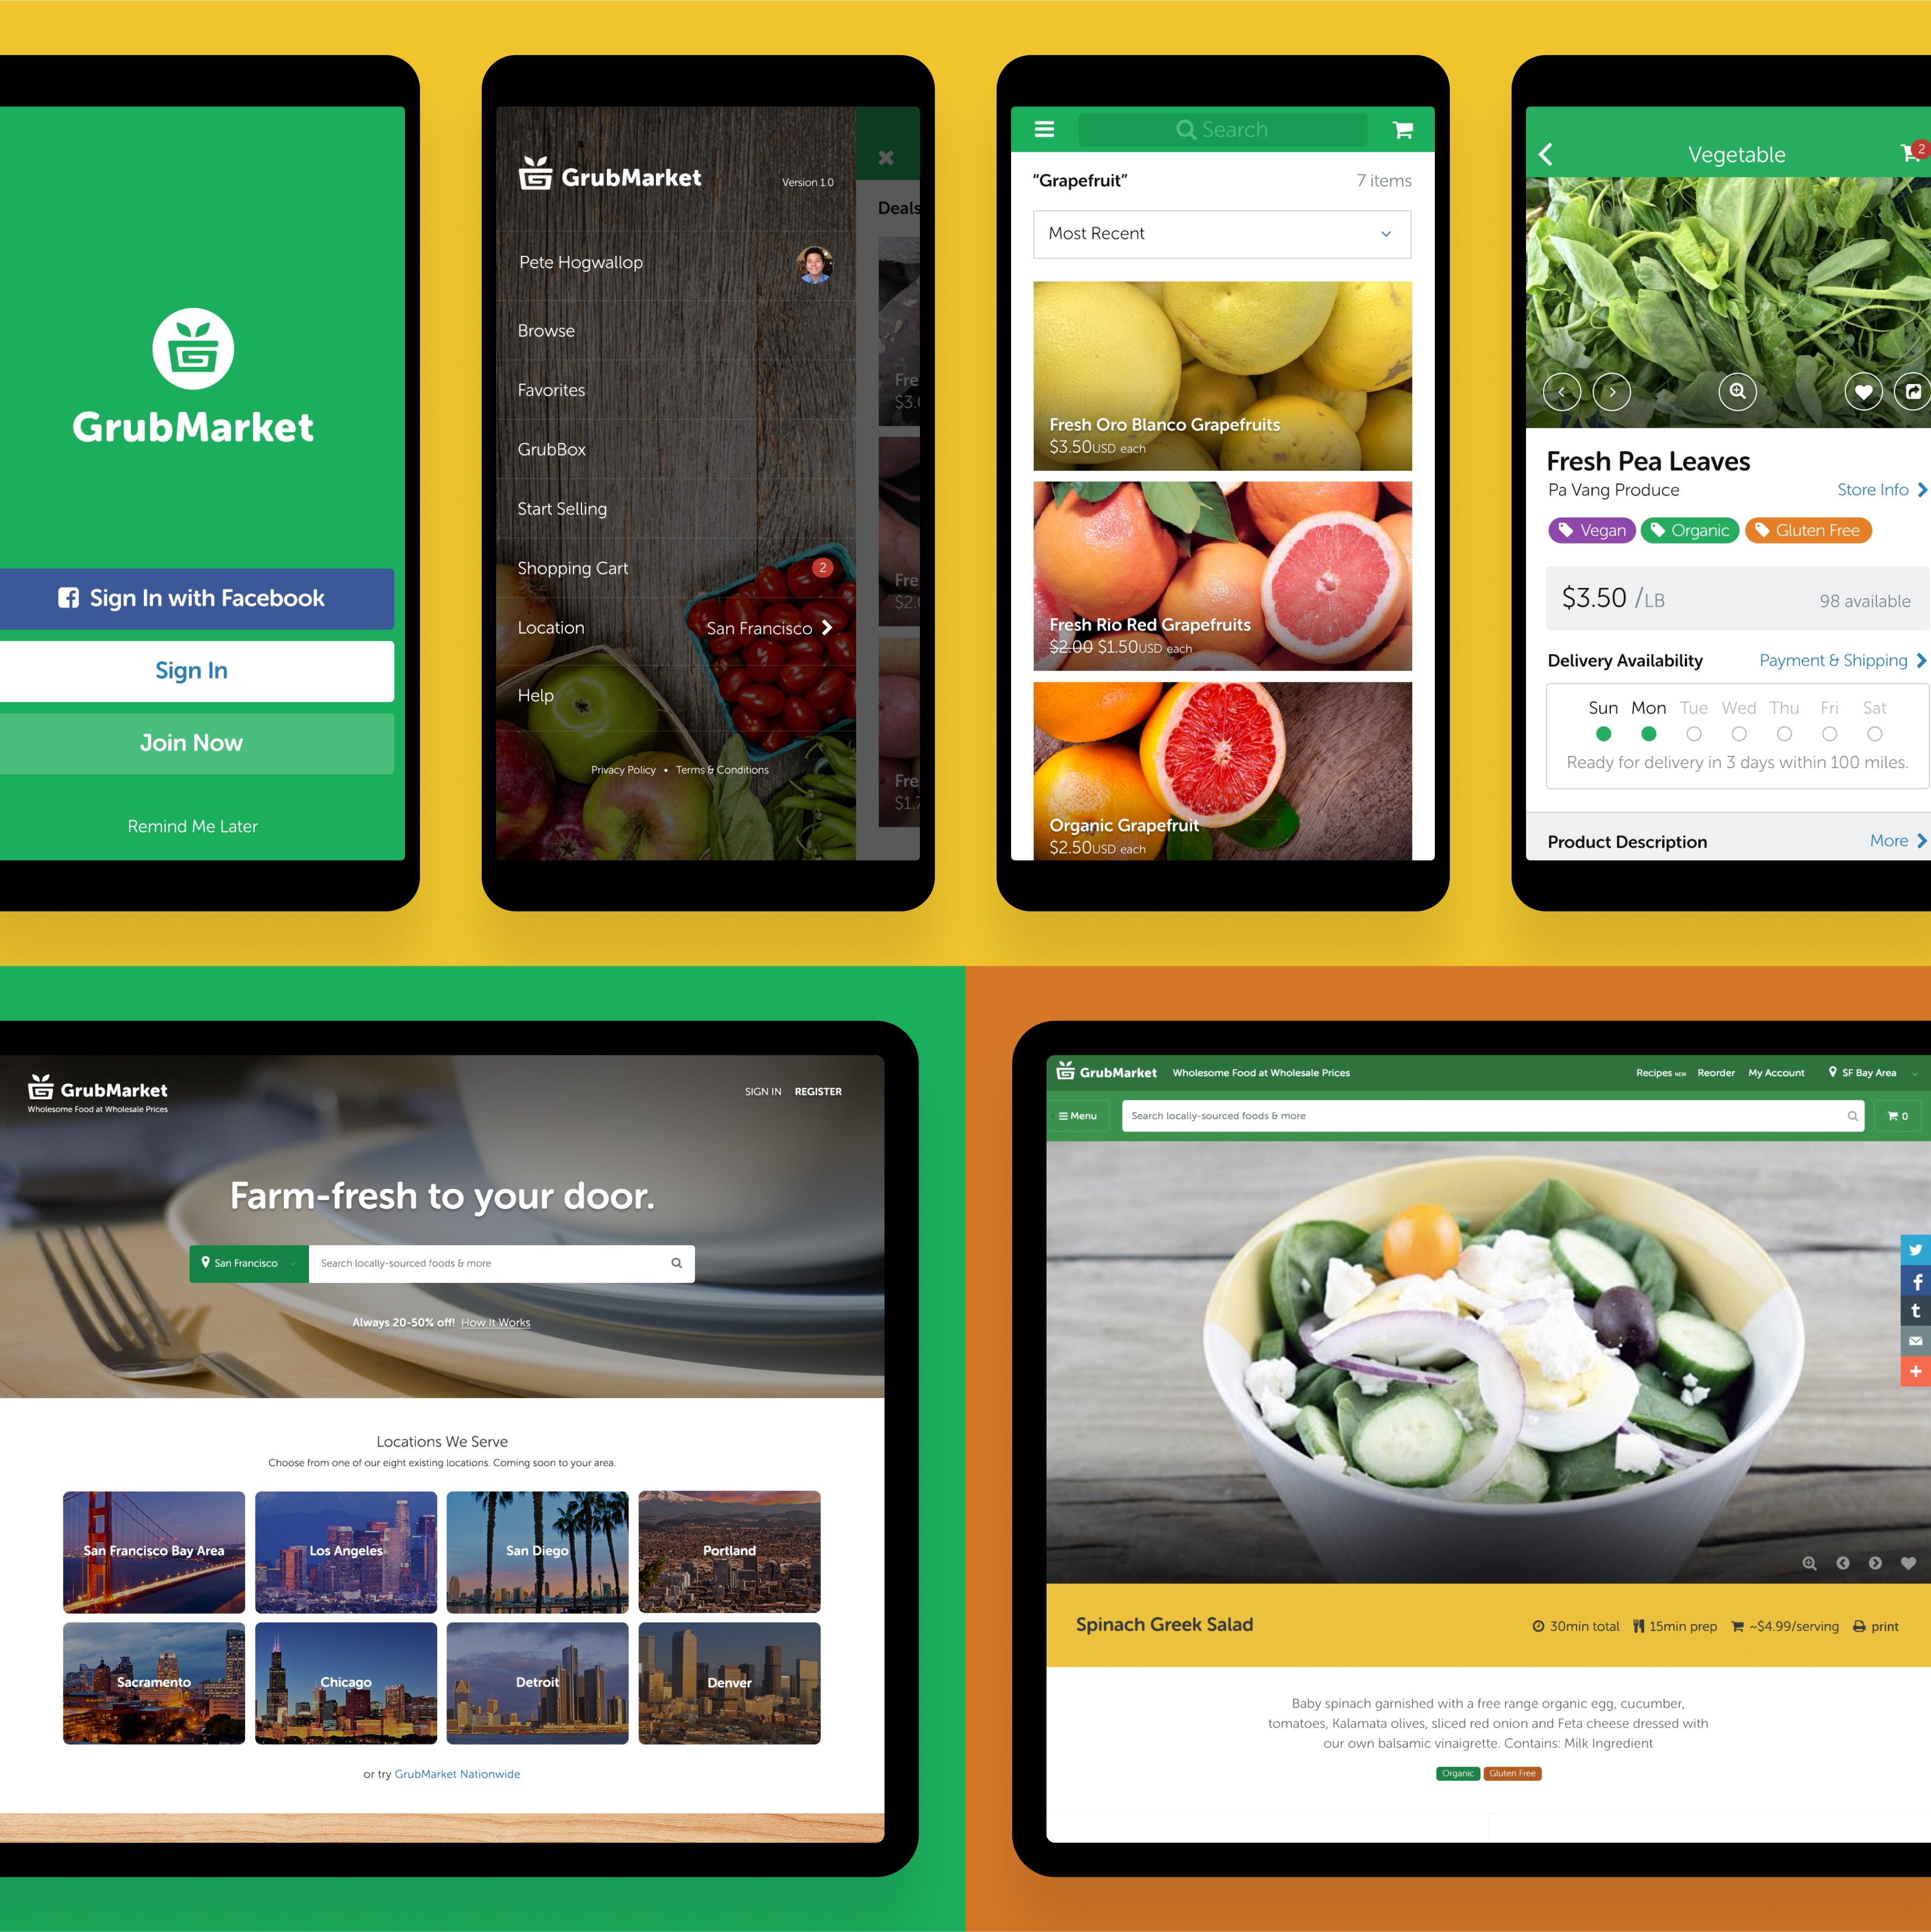 Examples of GrubMarket's native mobile app and B2C marketplace experience.